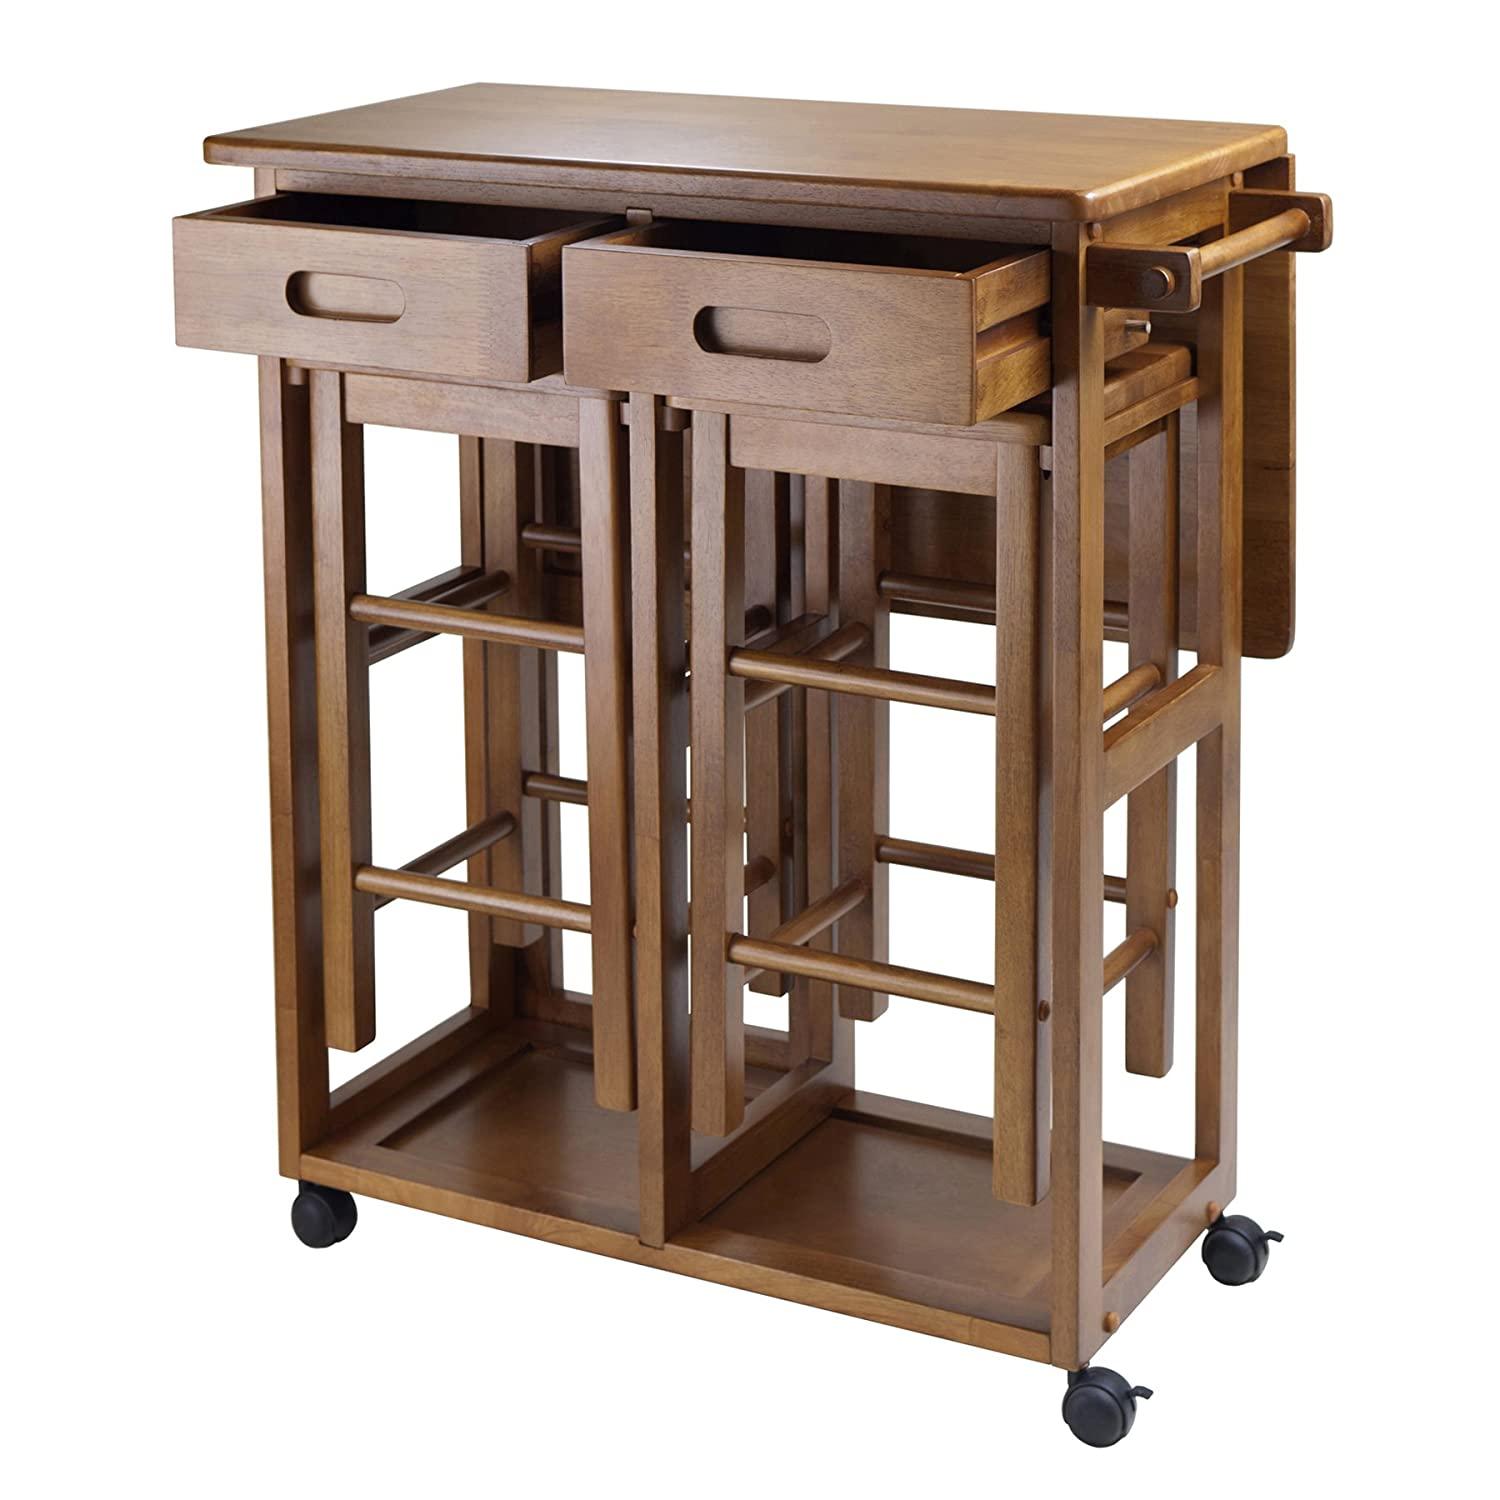 Amazon.com Winsome Space Saver with 2 Stools Square Kitchen u0026 Dining  sc 1 st  Amazon.com & Amazon.com: Winsome Space Saver with 2 Stools Square: Kitchen ... islam-shia.org